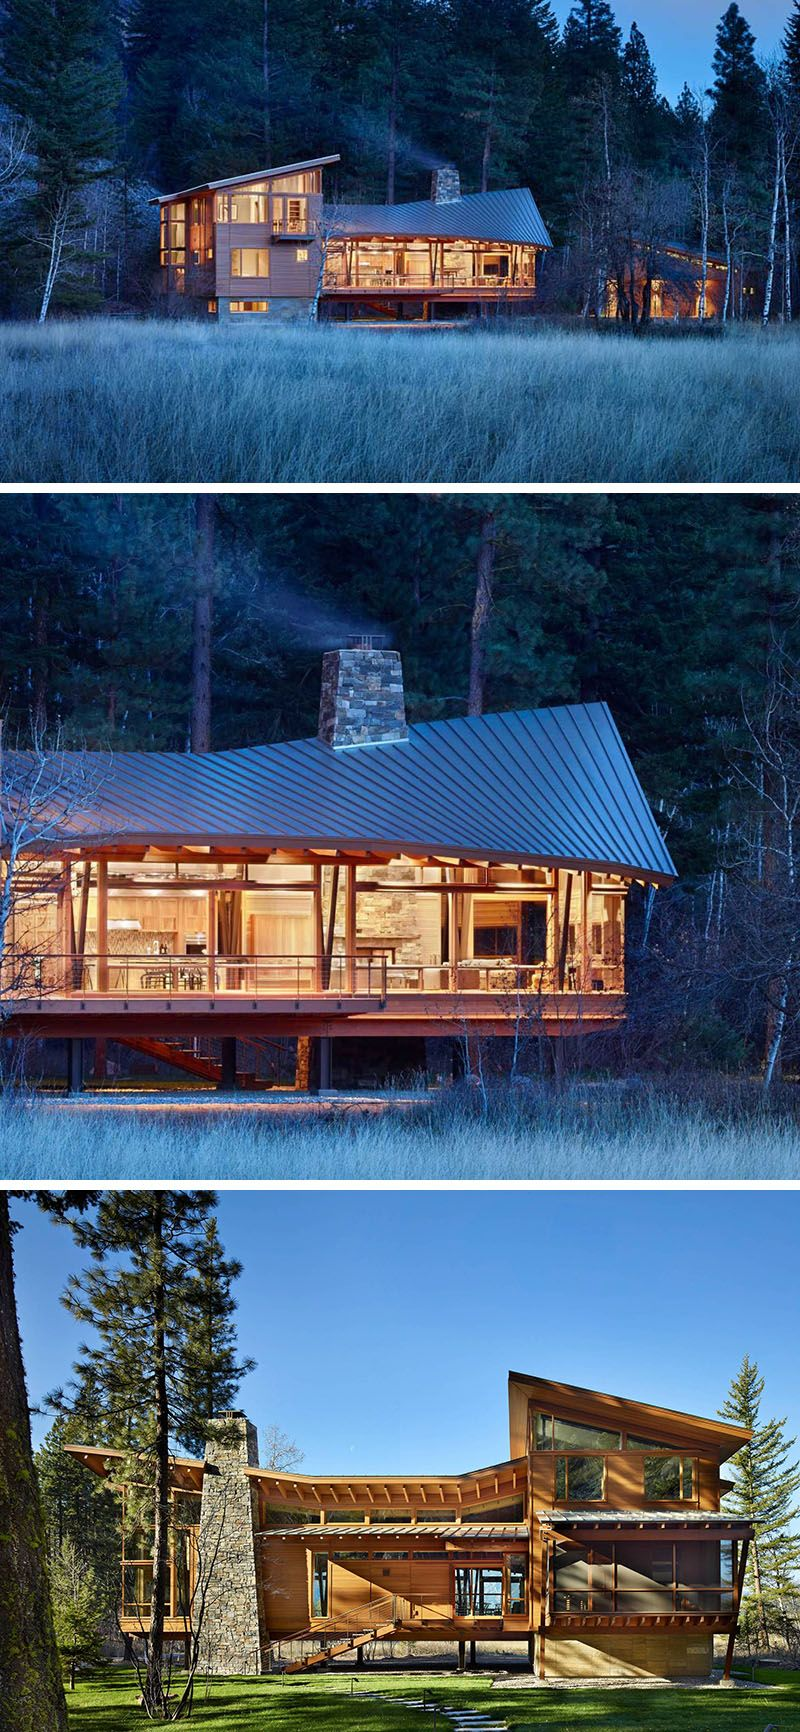 20 Awesome Examples Of Pacific Northwest Architecture Rustic Houses Exterior Contemporary House Plans Eco House Design